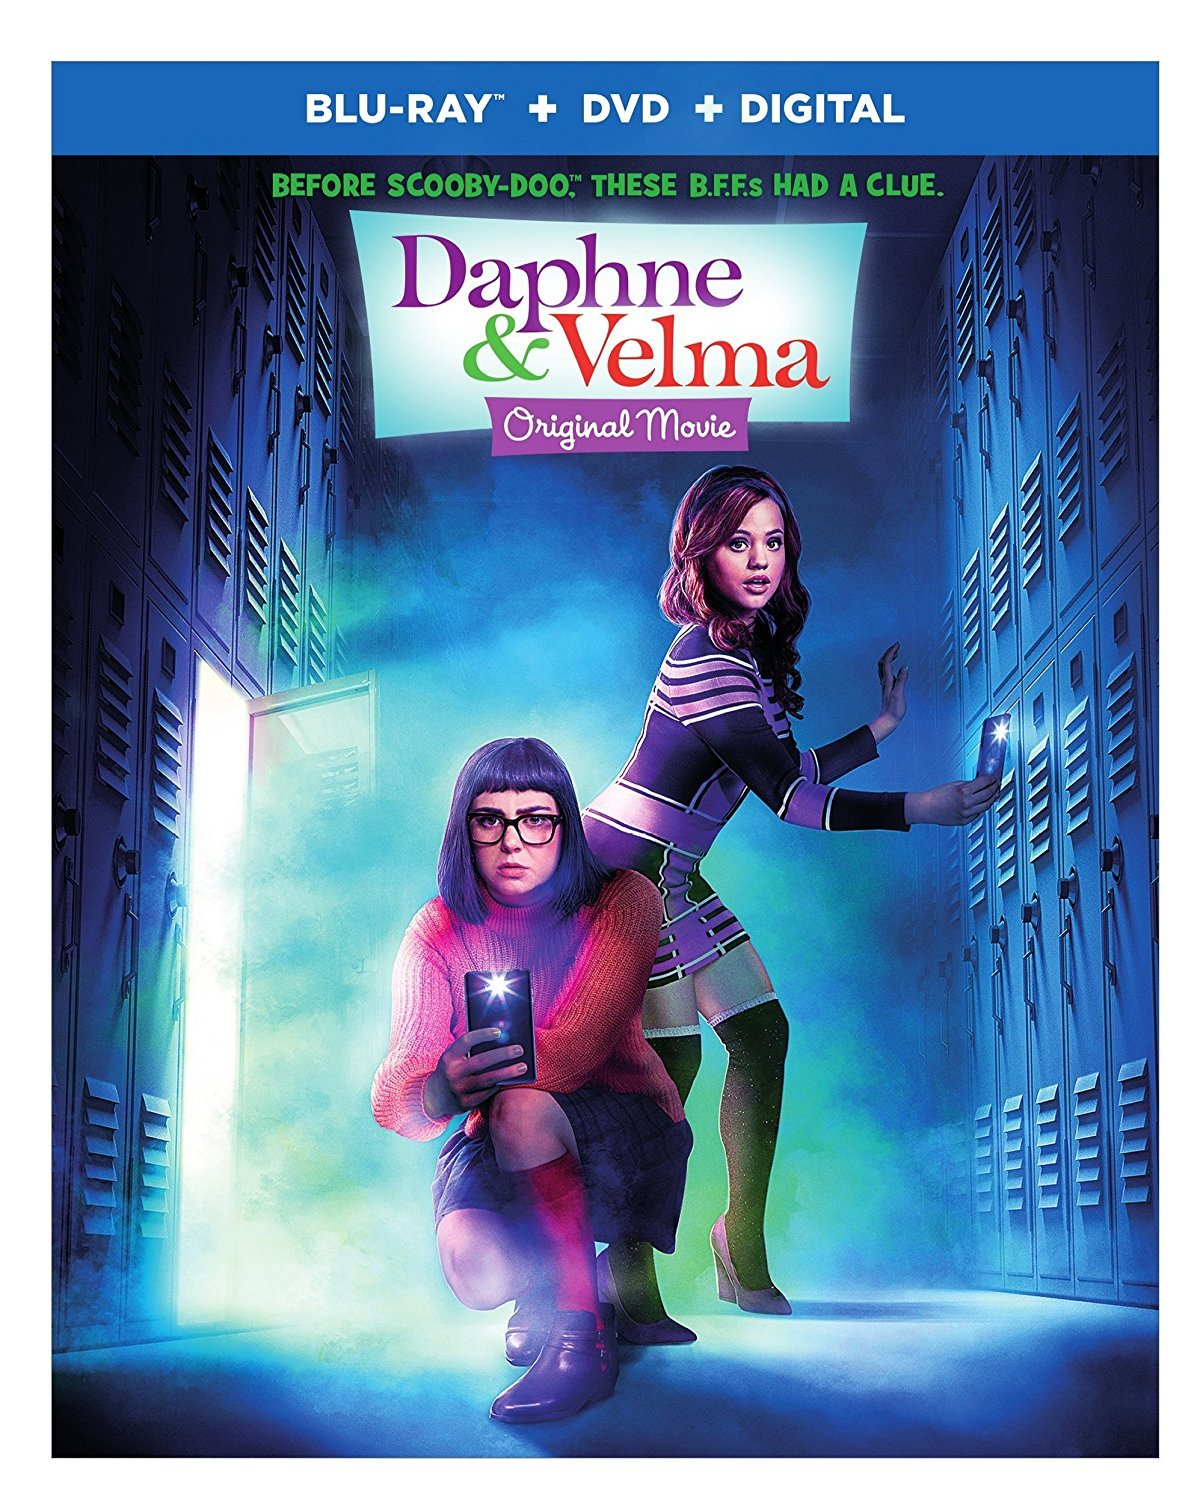 Daphne & Velma [Blu-ray+DVD+Digital, 2018]